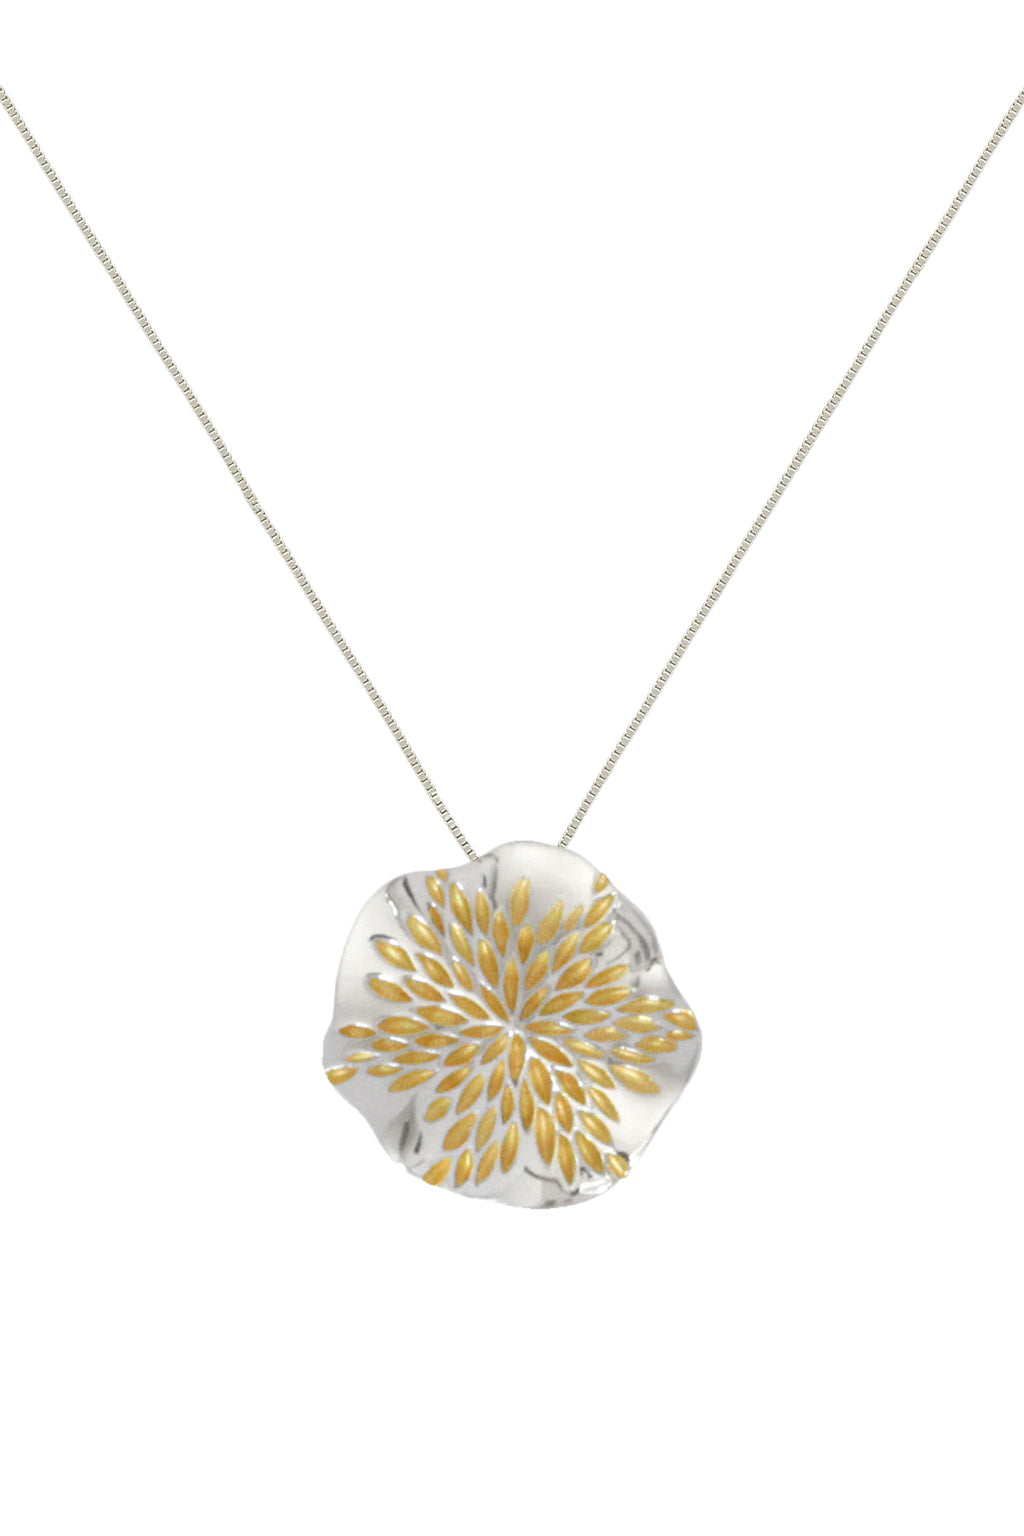 Silver Pendant with Golden Petals